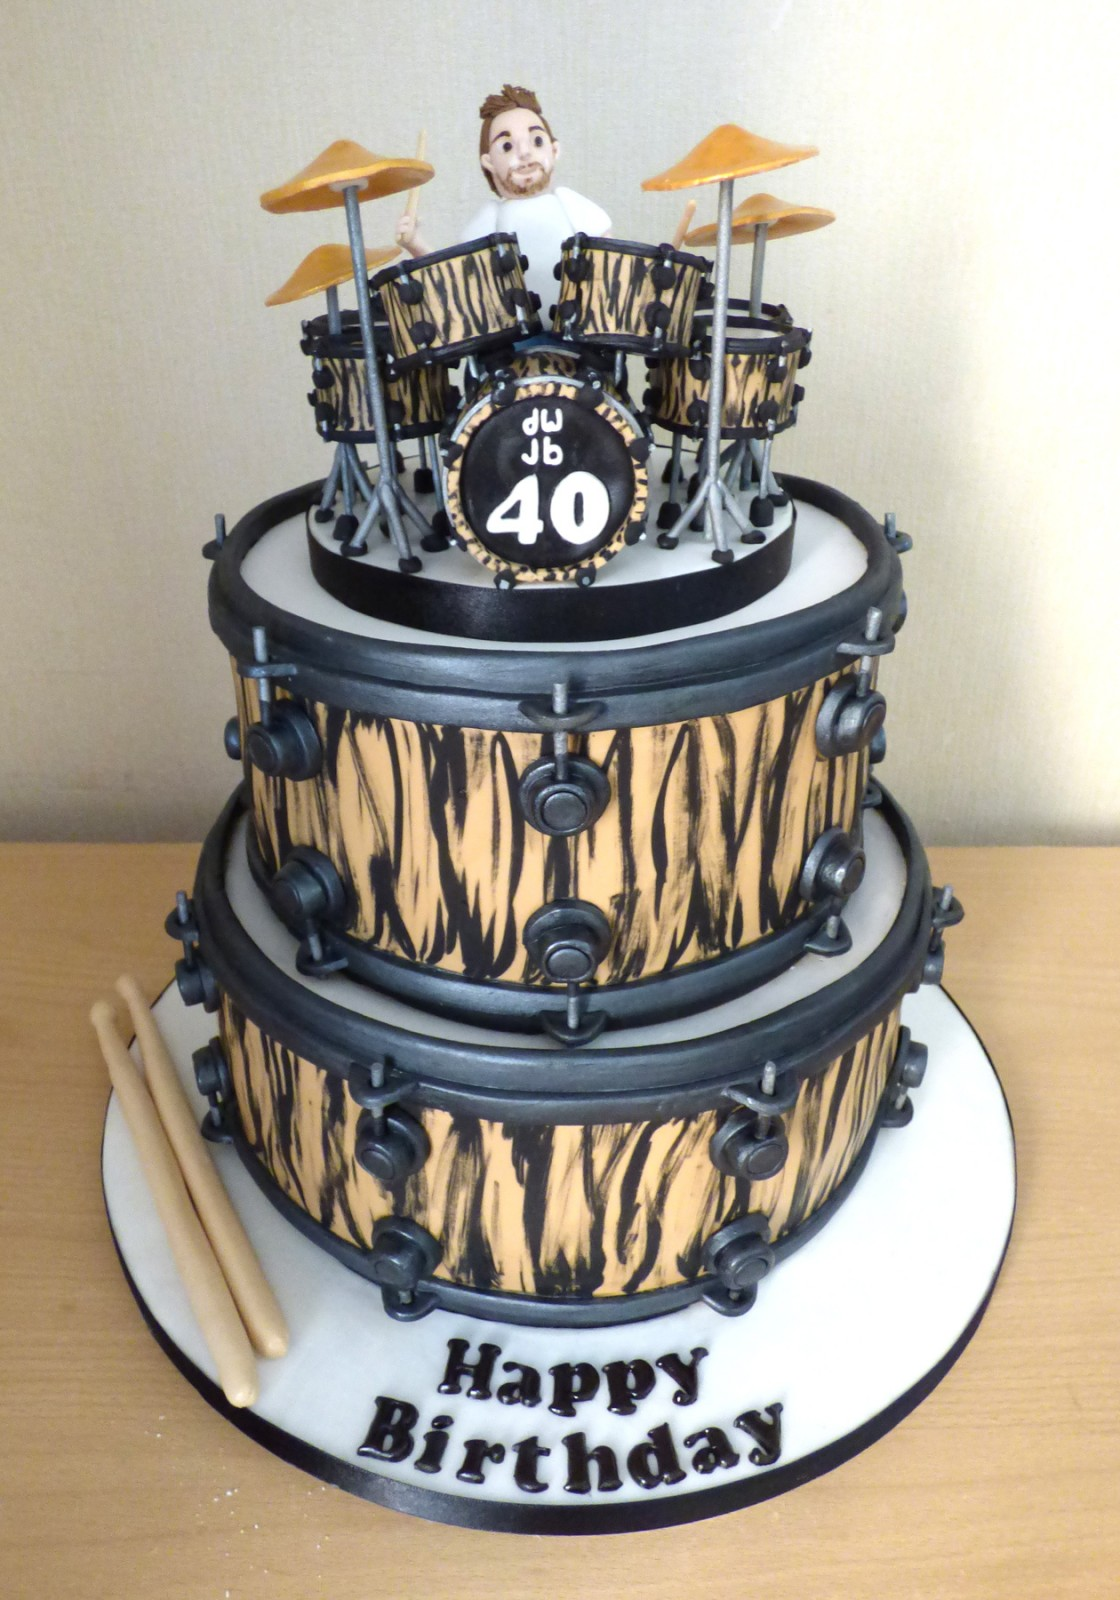 2 Tier Drummer And Drum Kit Birthday Cake Susies Cakes